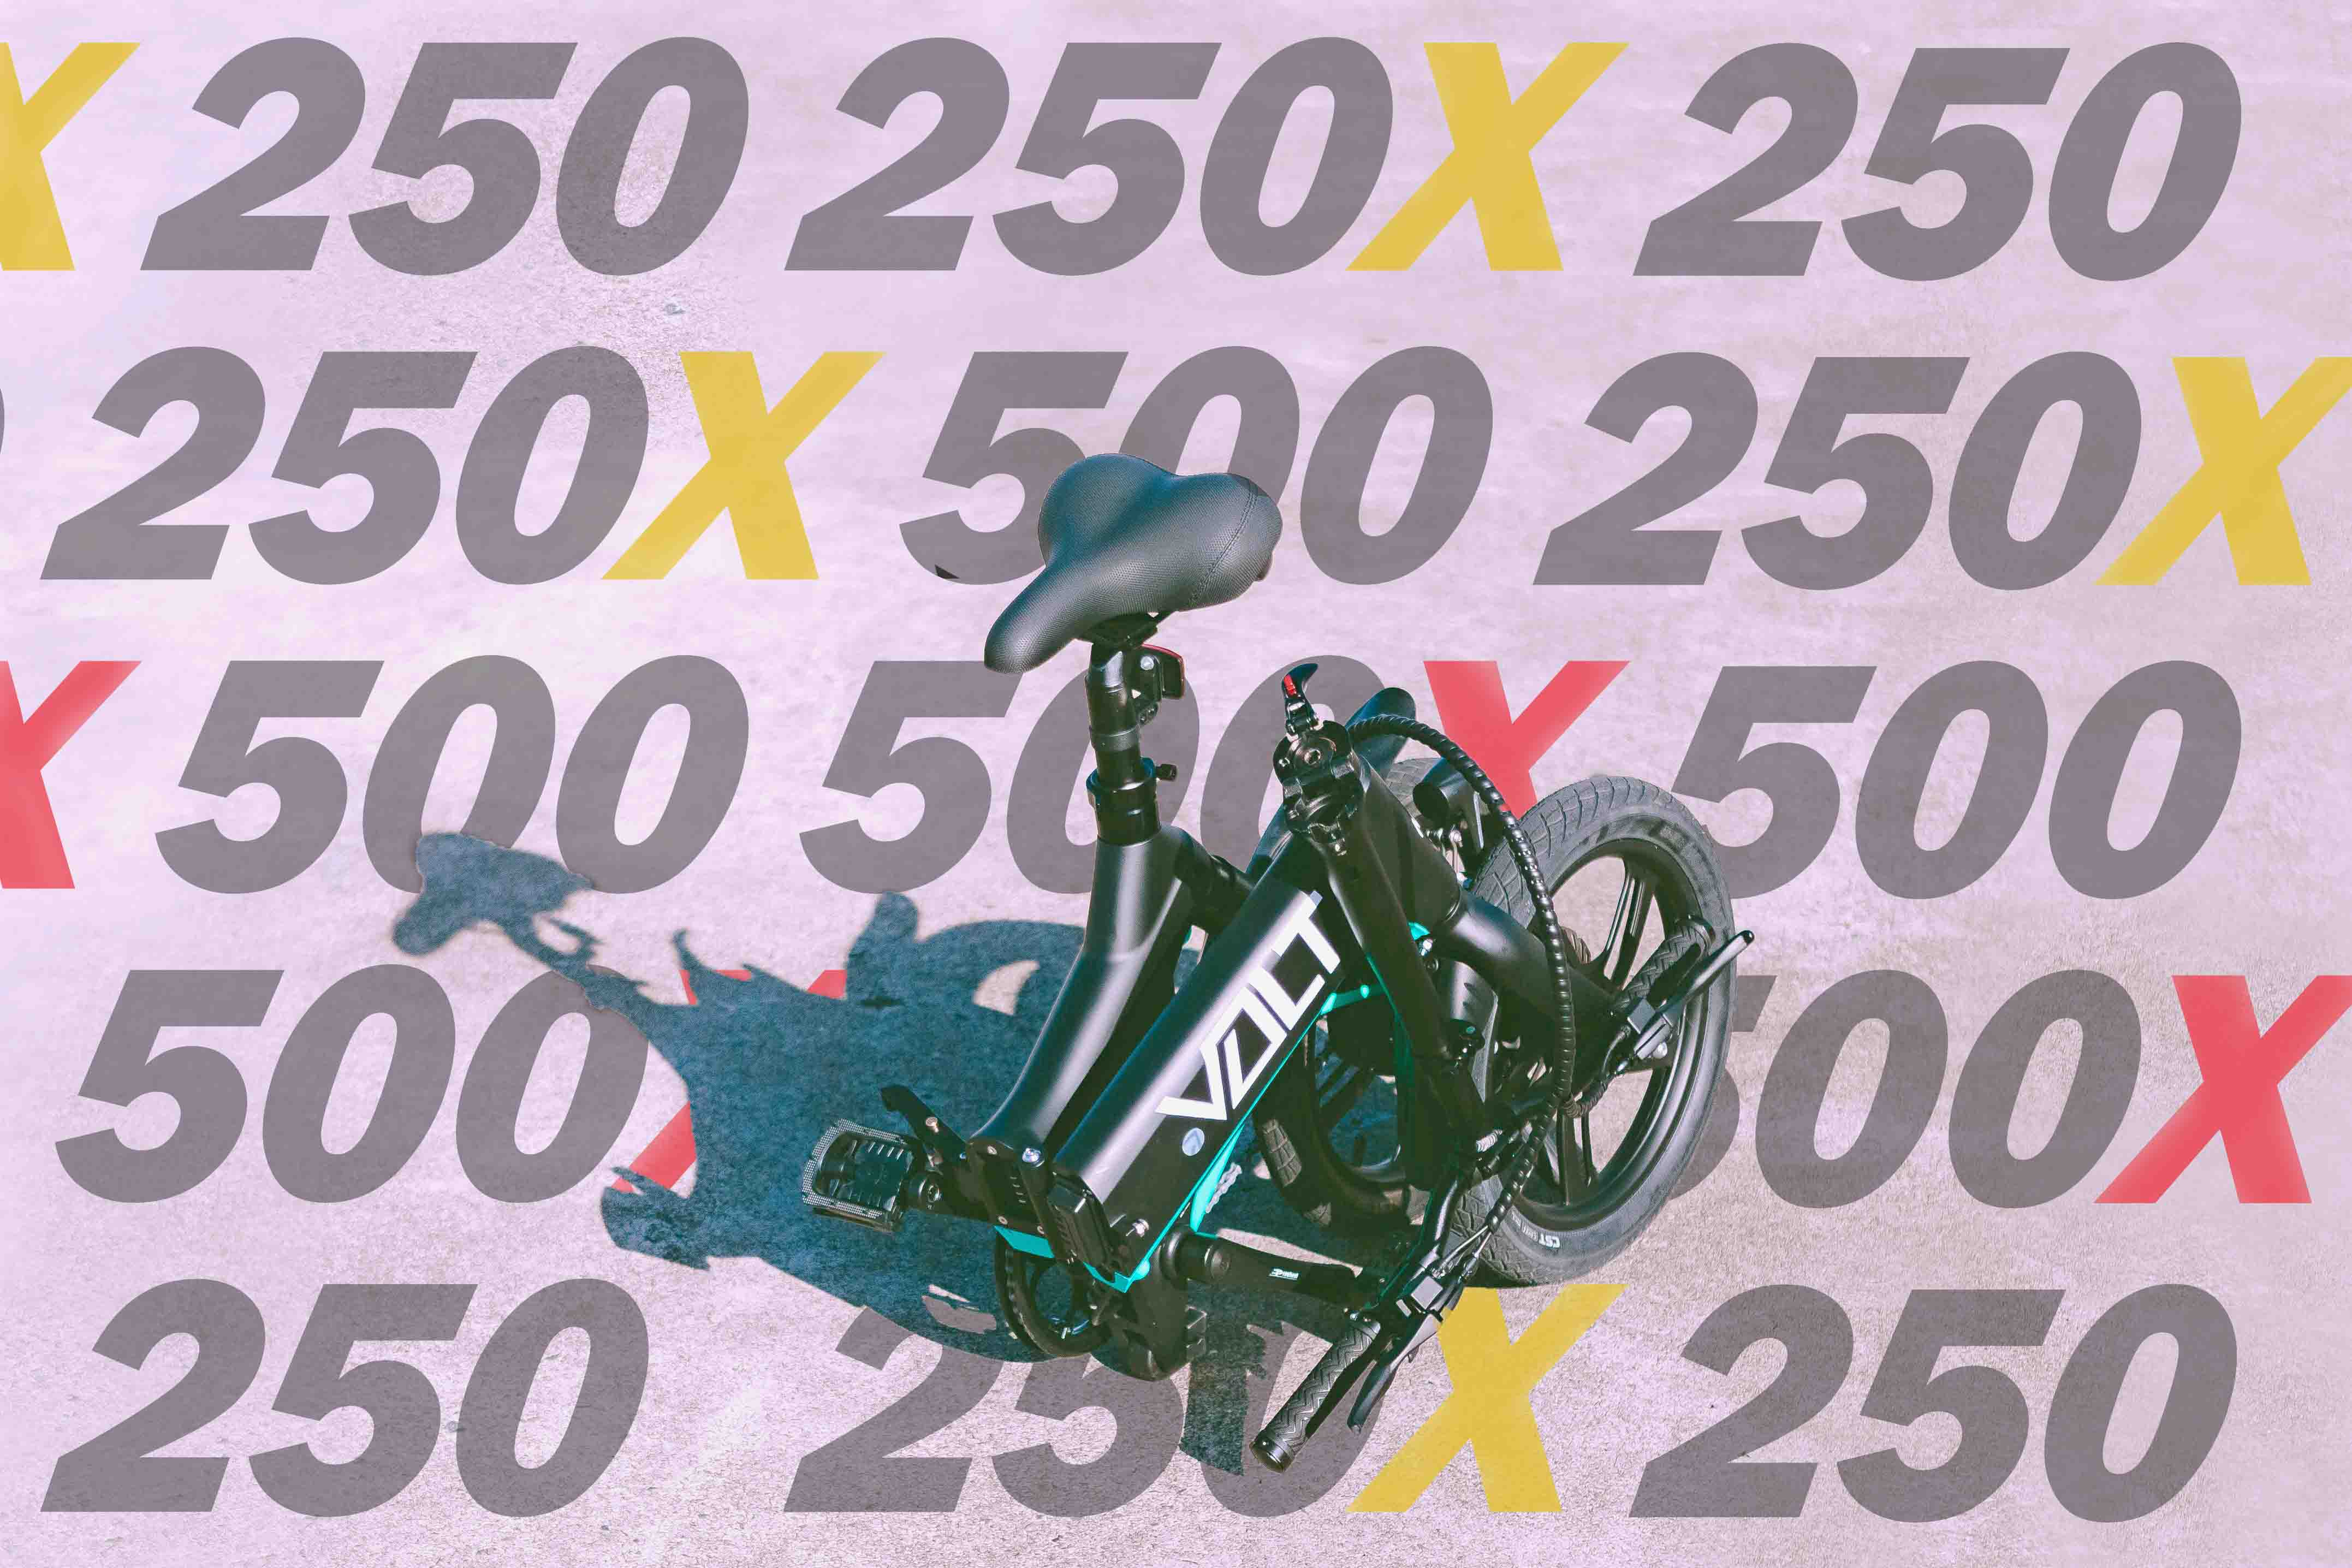 Promotional graphic of the VOLT 250 series in